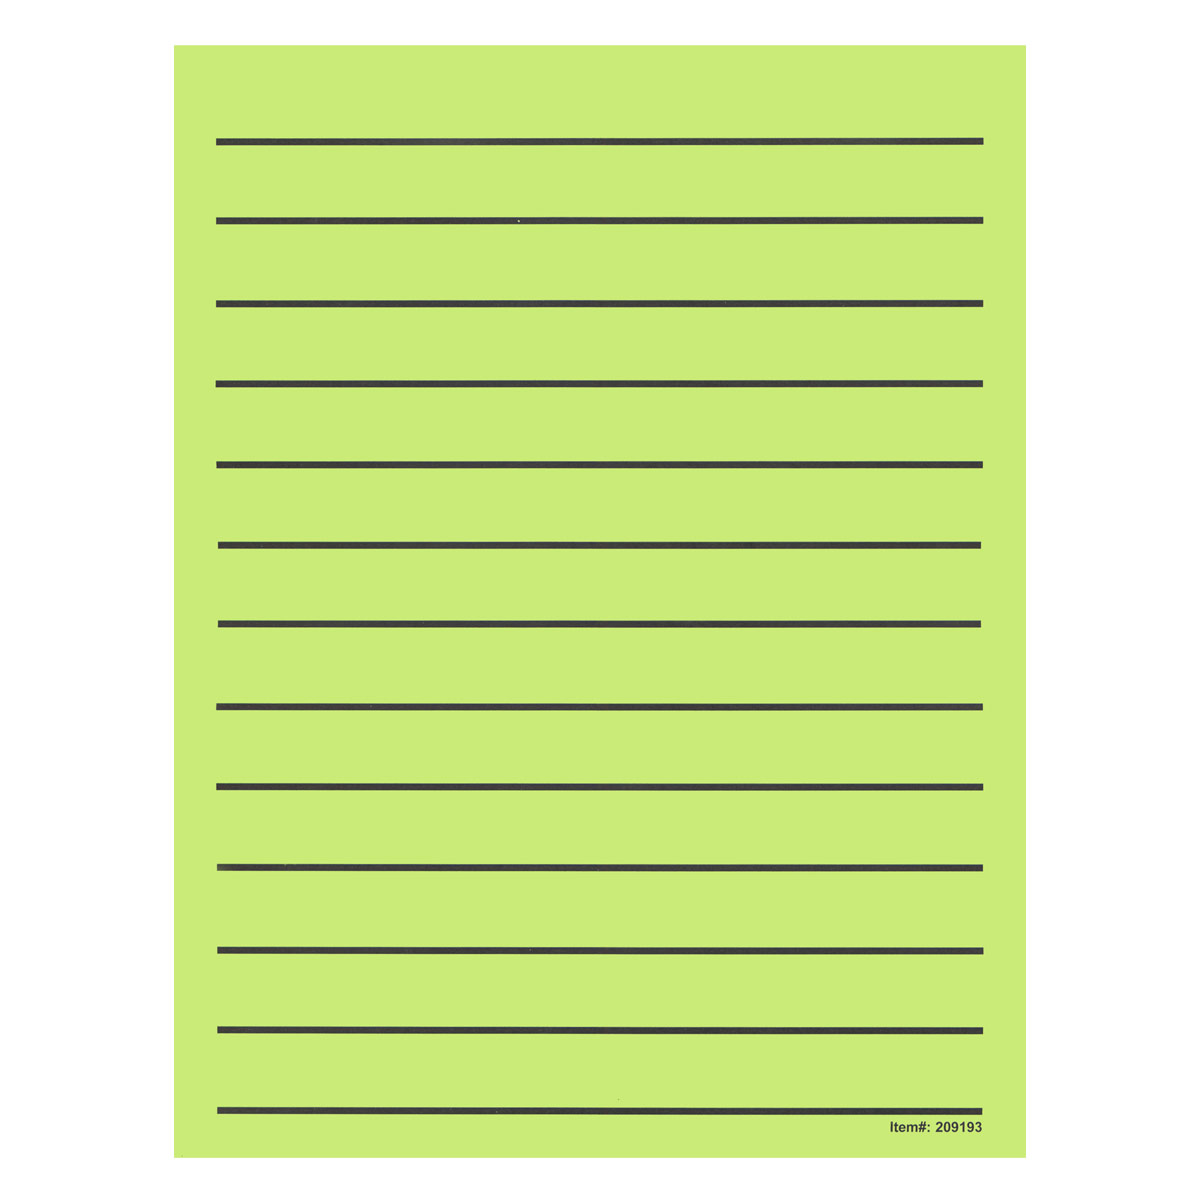 Bold Line Paper Pad in Neon Green with Black Lines- 90 Sheets